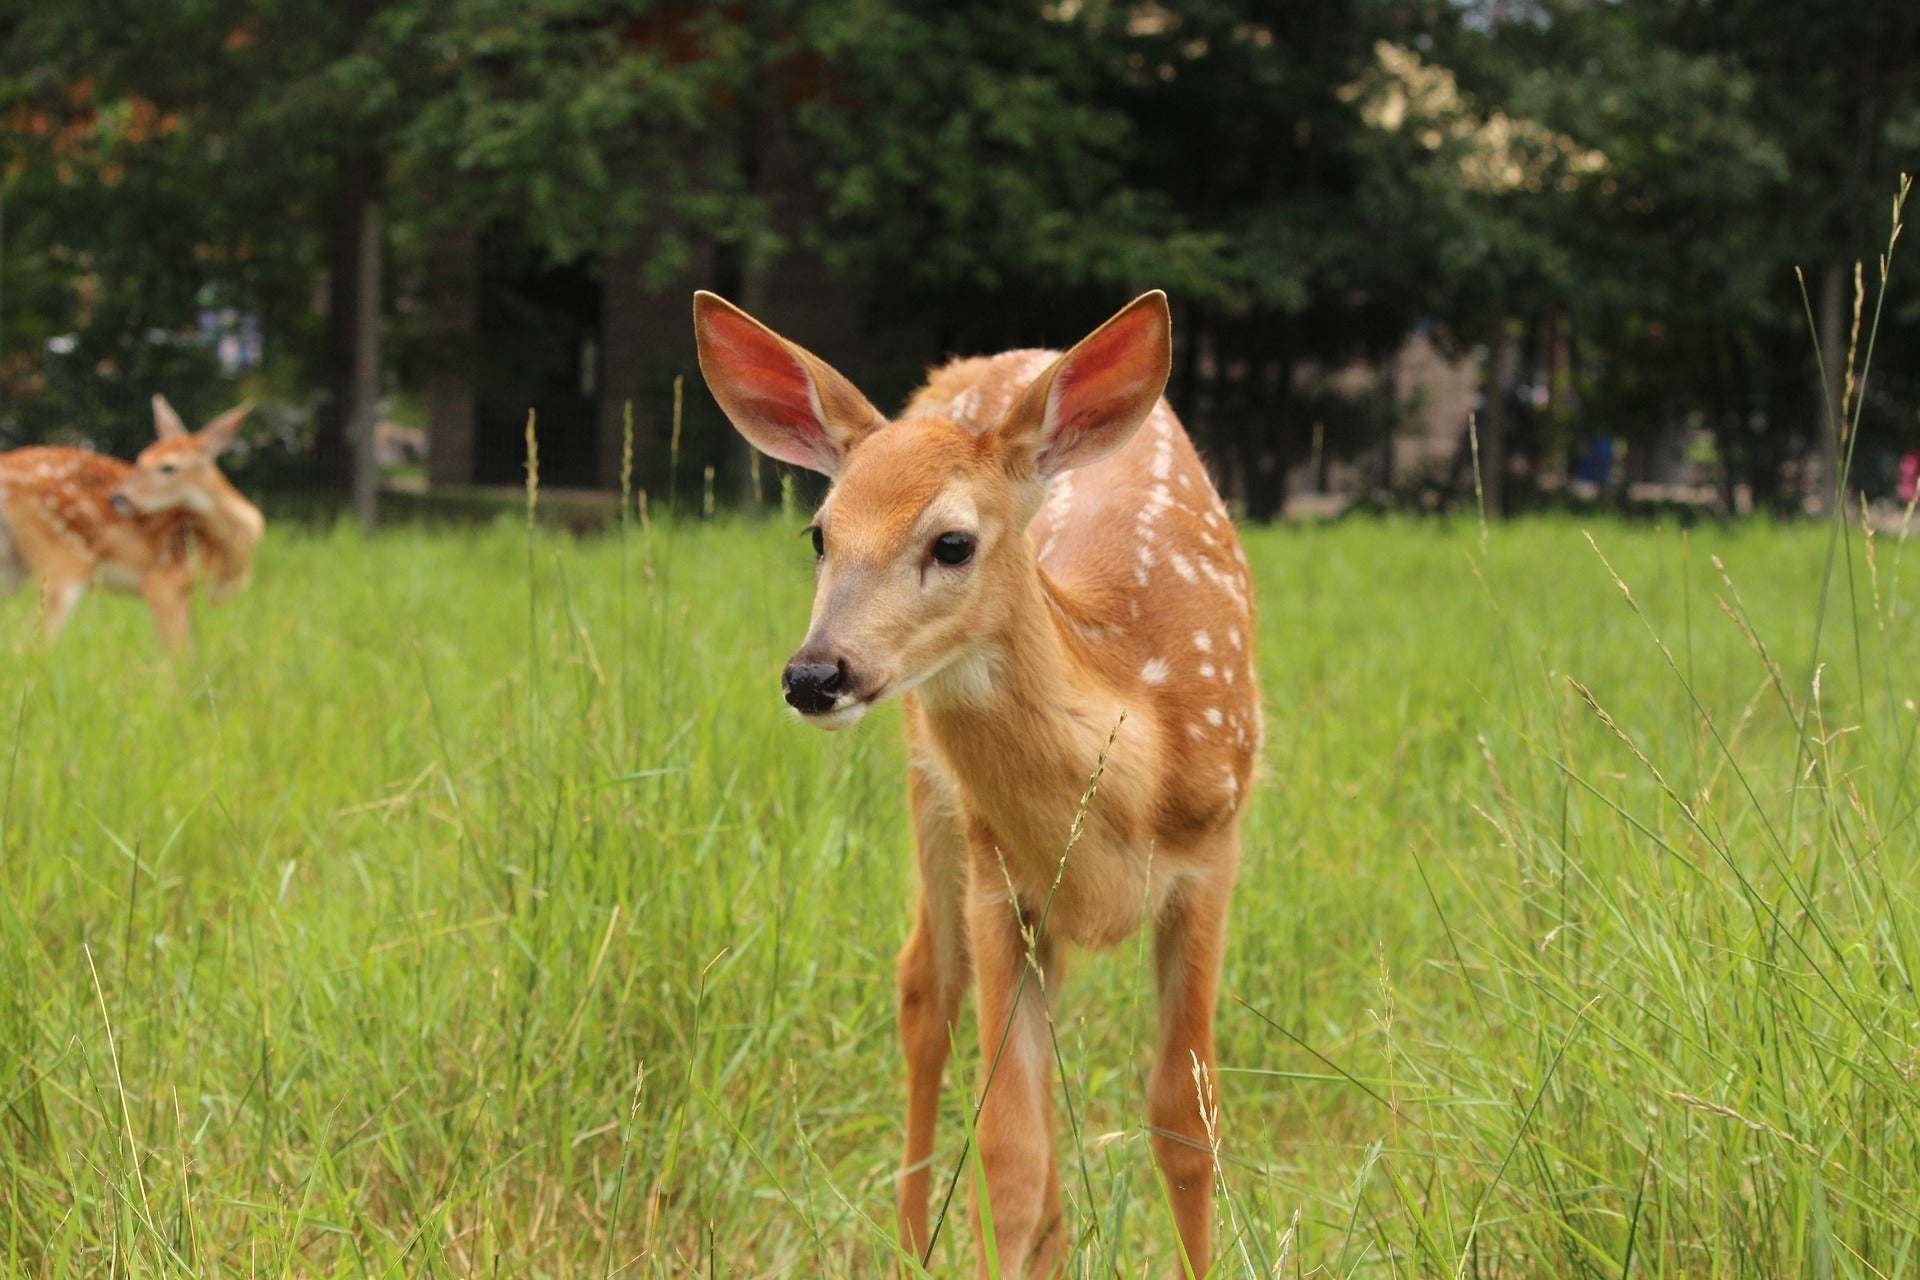 Studies Show Whitetail Deer Can Get and Spread COVID-19